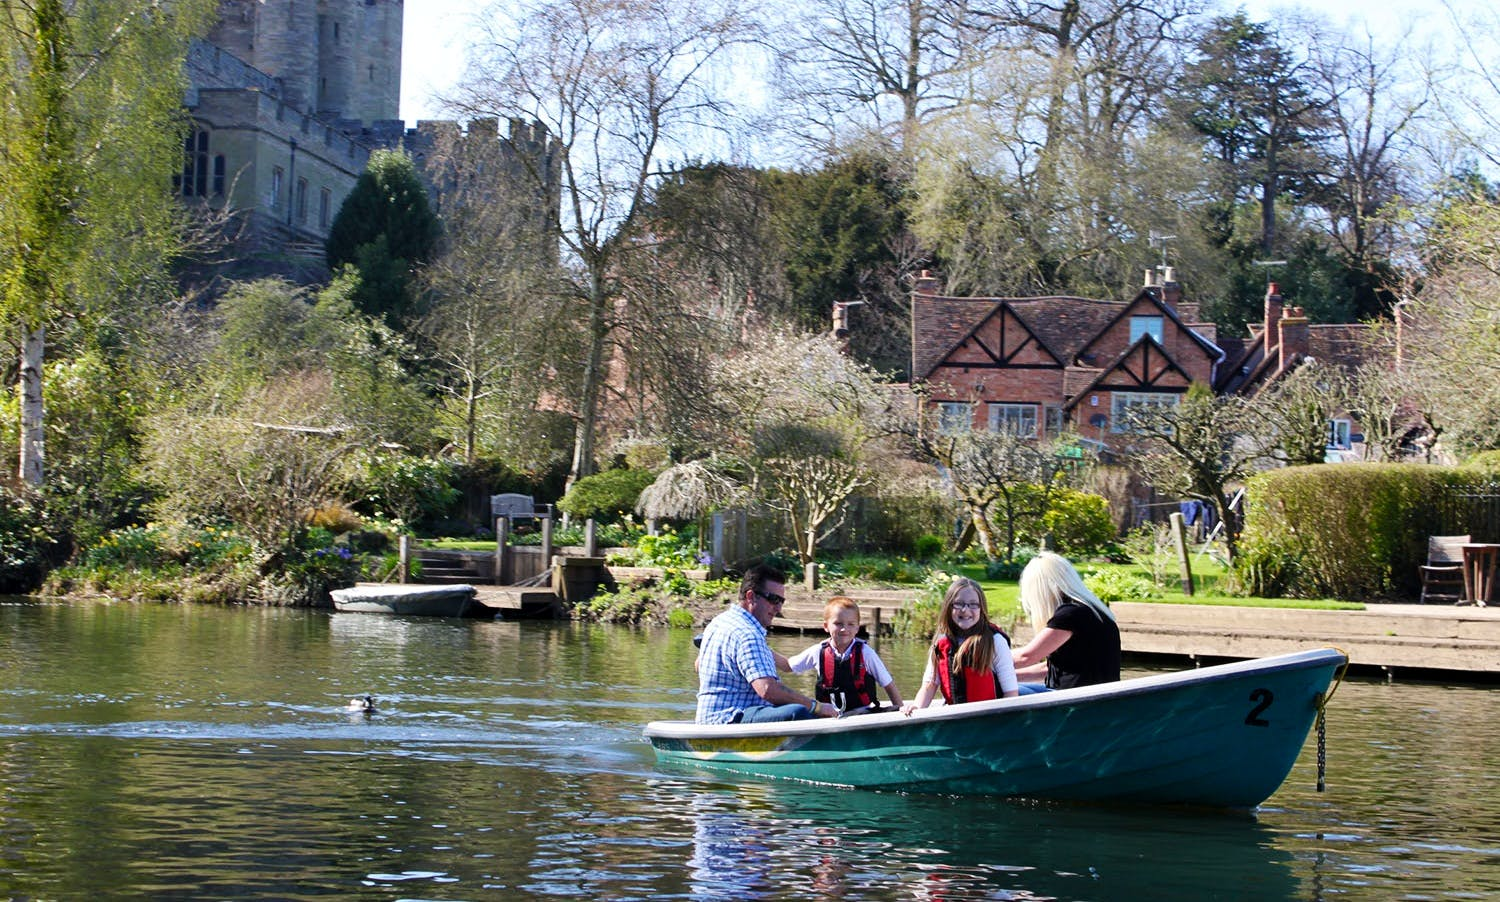 Electric Motor Boat Hire in Warwick, United Kingdom